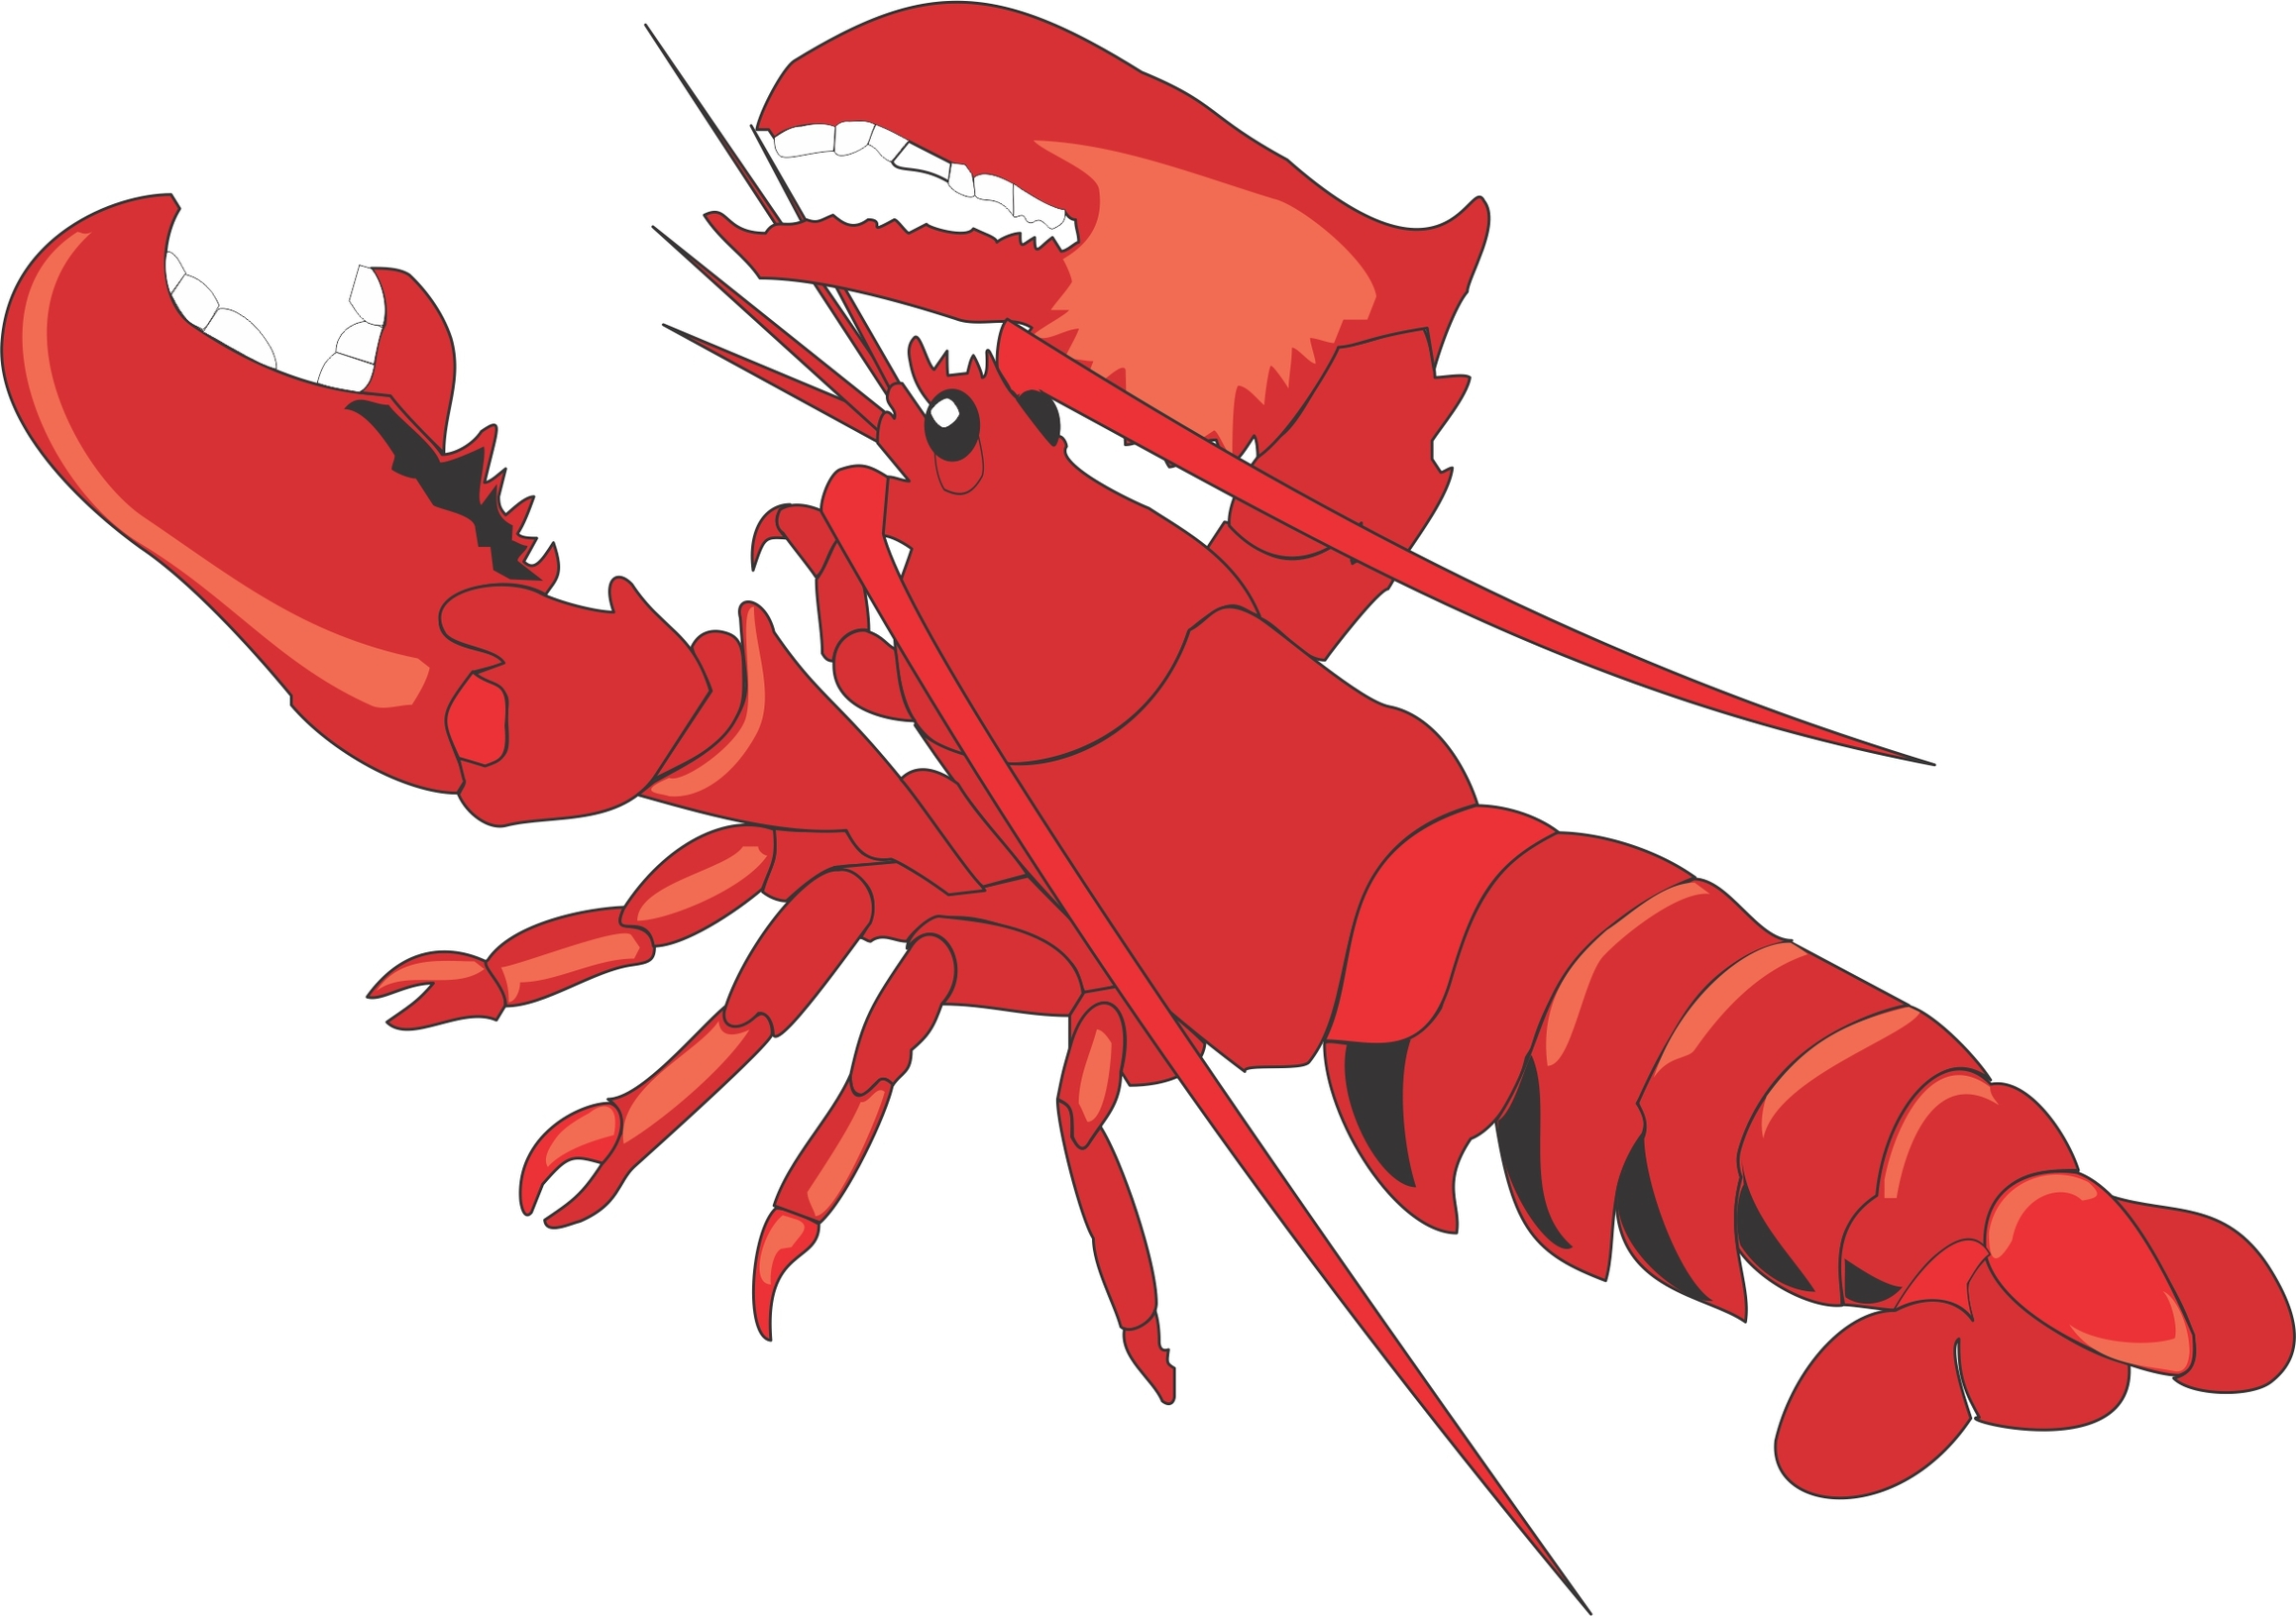 Lobster clipart Lobster resource use Lobster clipart